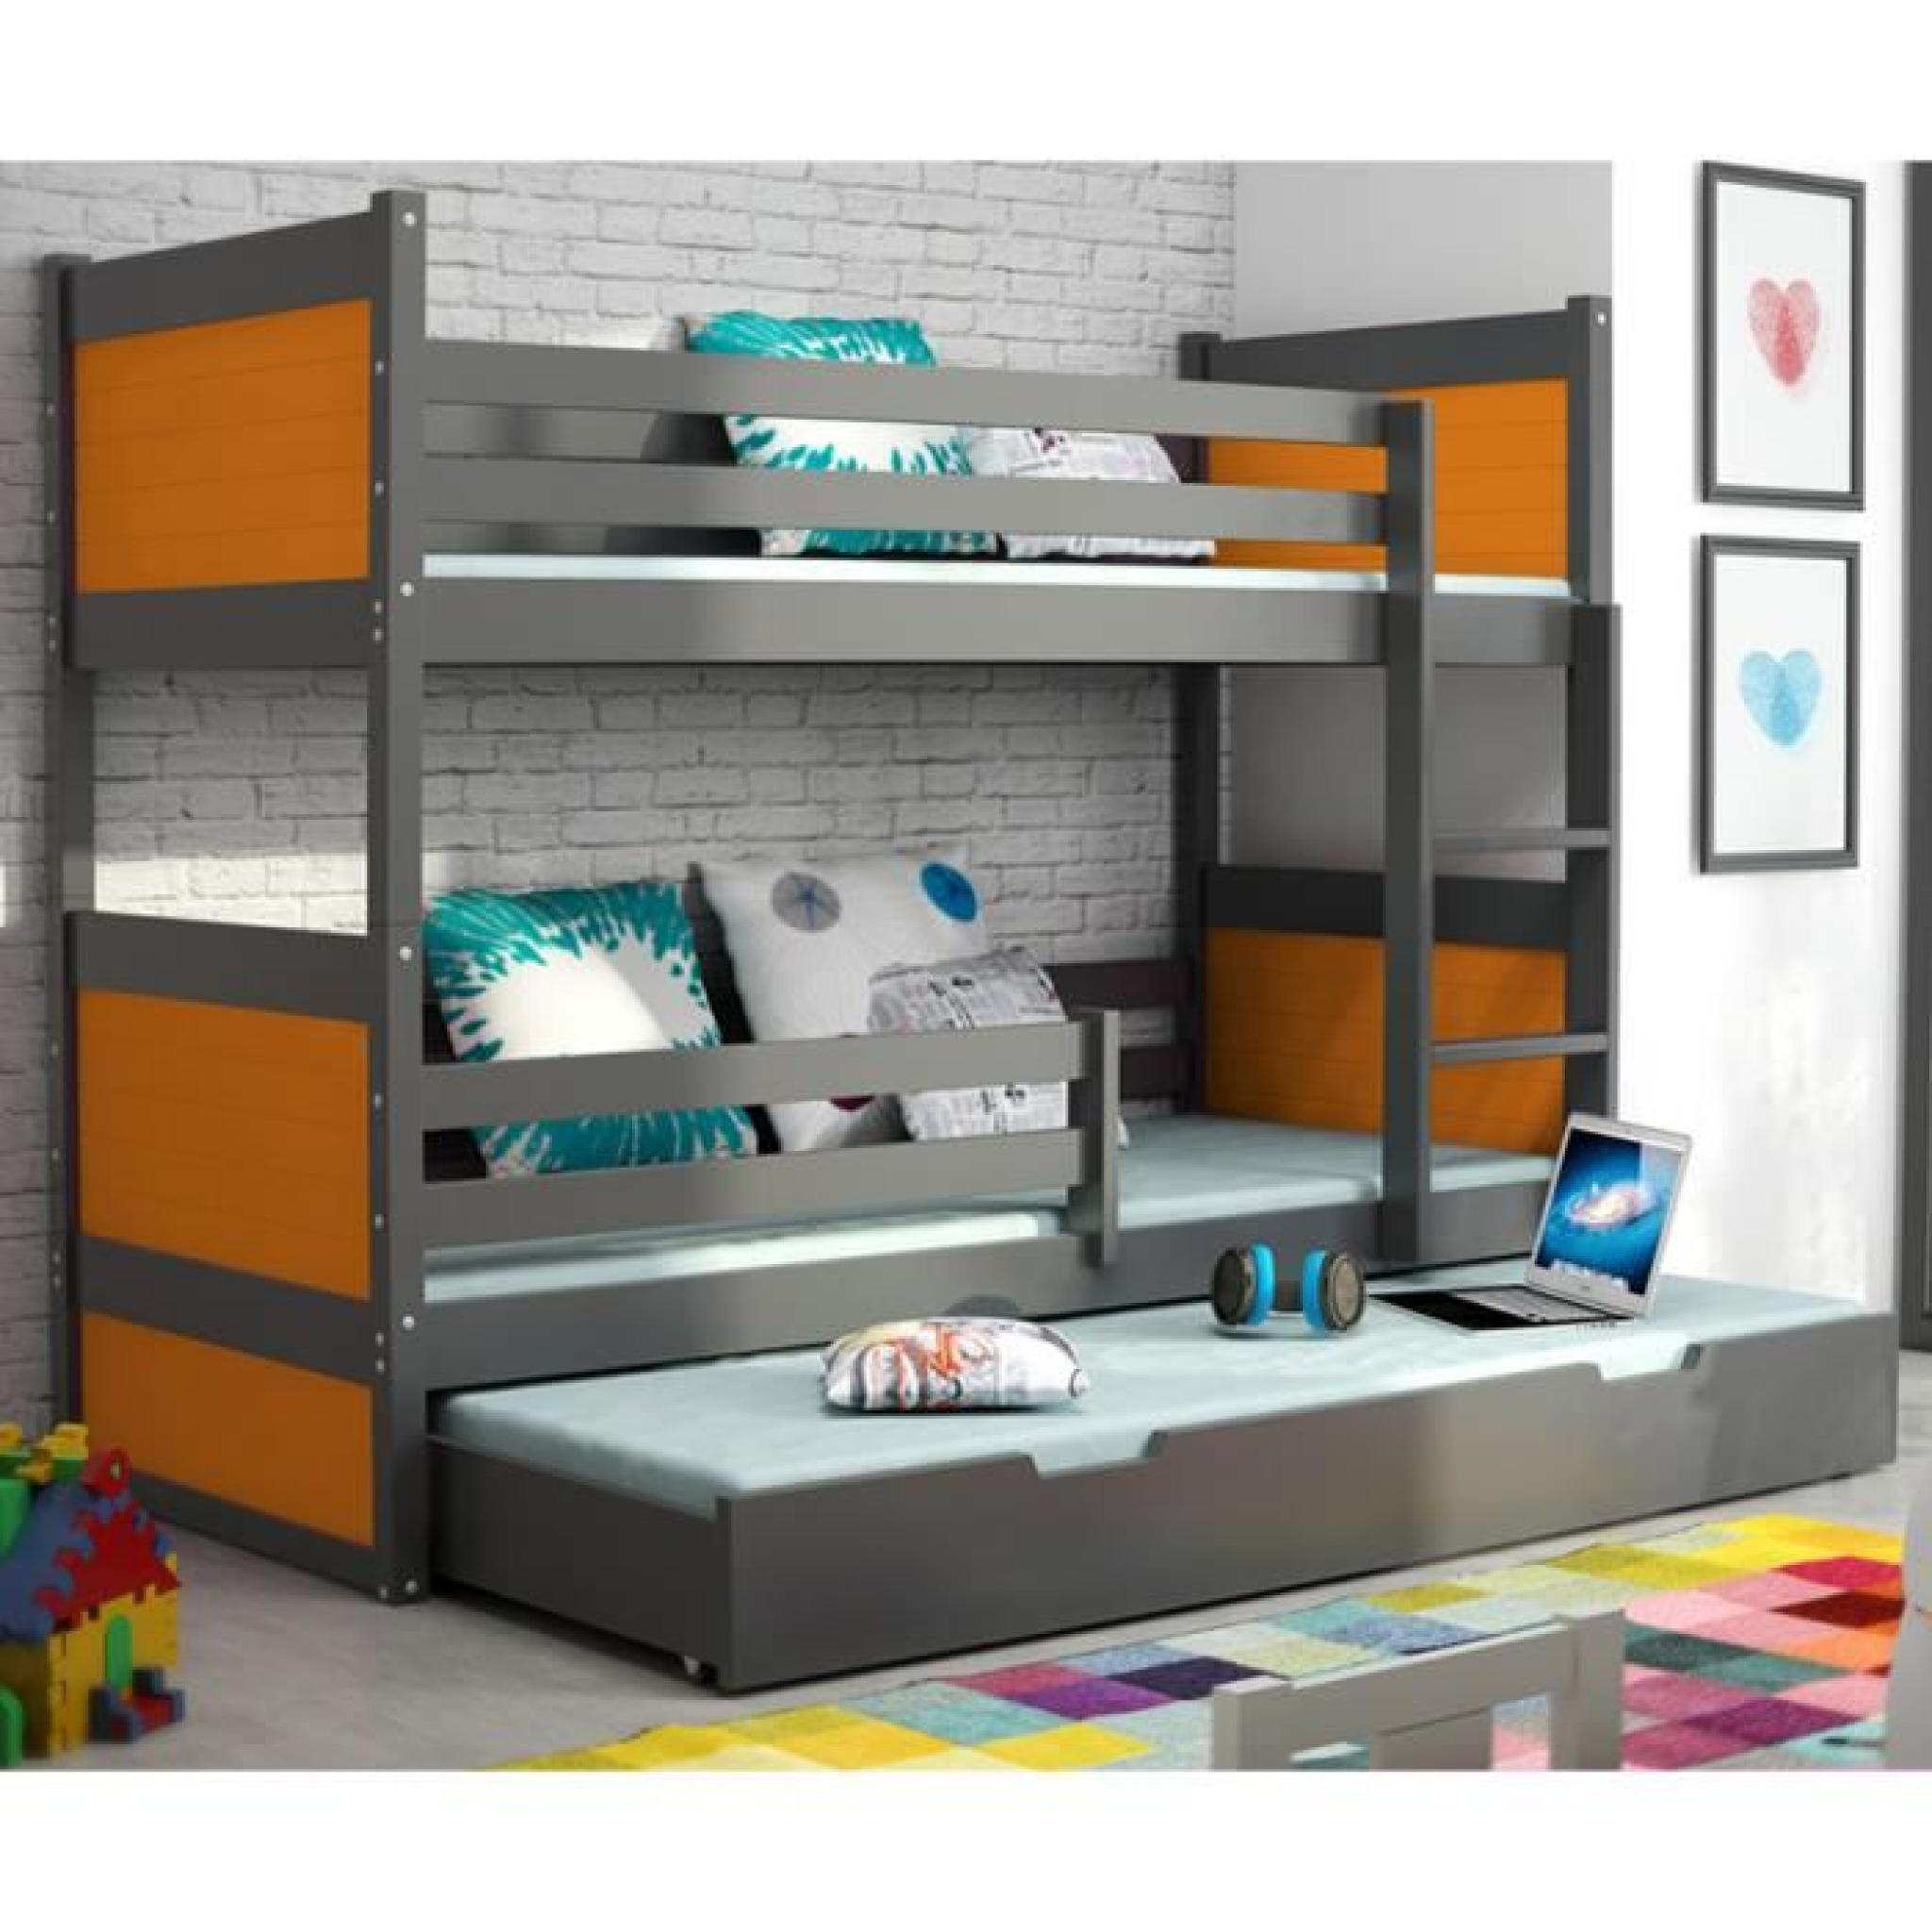 lit superpos rico 3 en pin 160x80 gris achat vente lit superpose pas cher couleur et. Black Bedroom Furniture Sets. Home Design Ideas